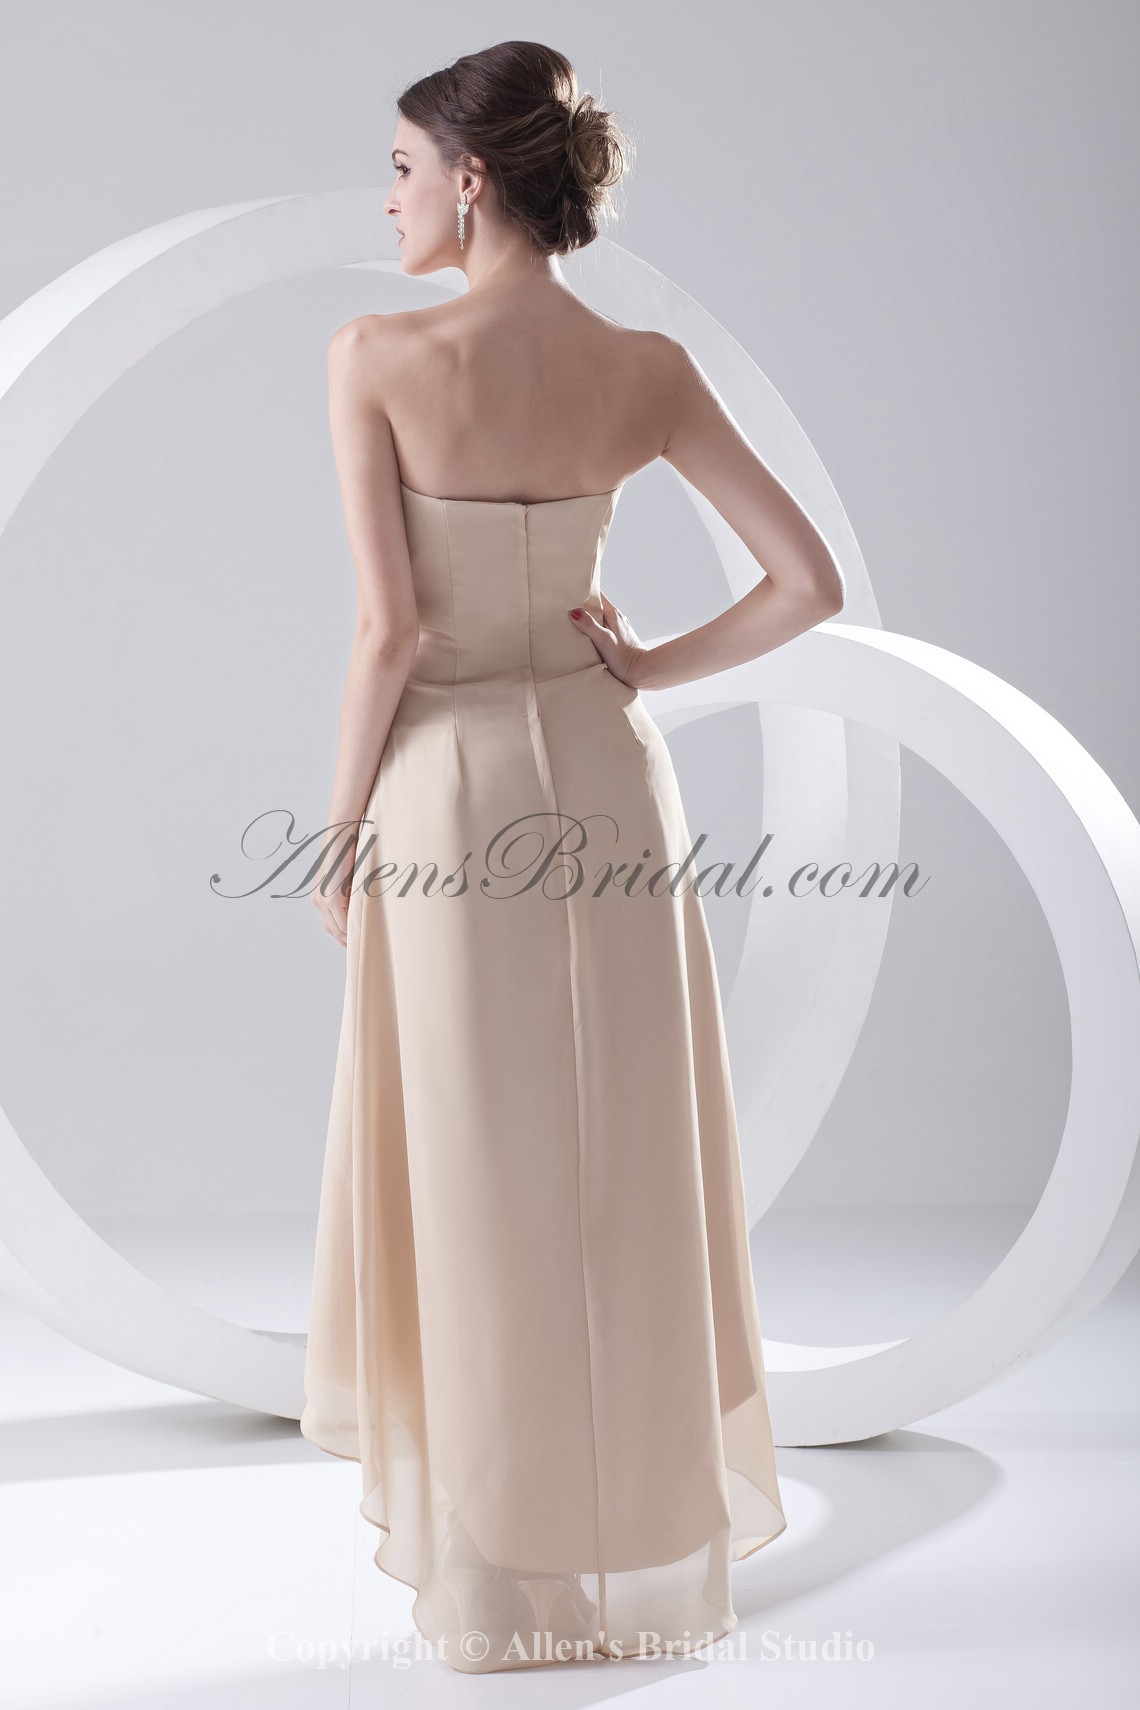 /226-1810/chiffon-strapless-a-line-ankle-length-prom-dress.jpg